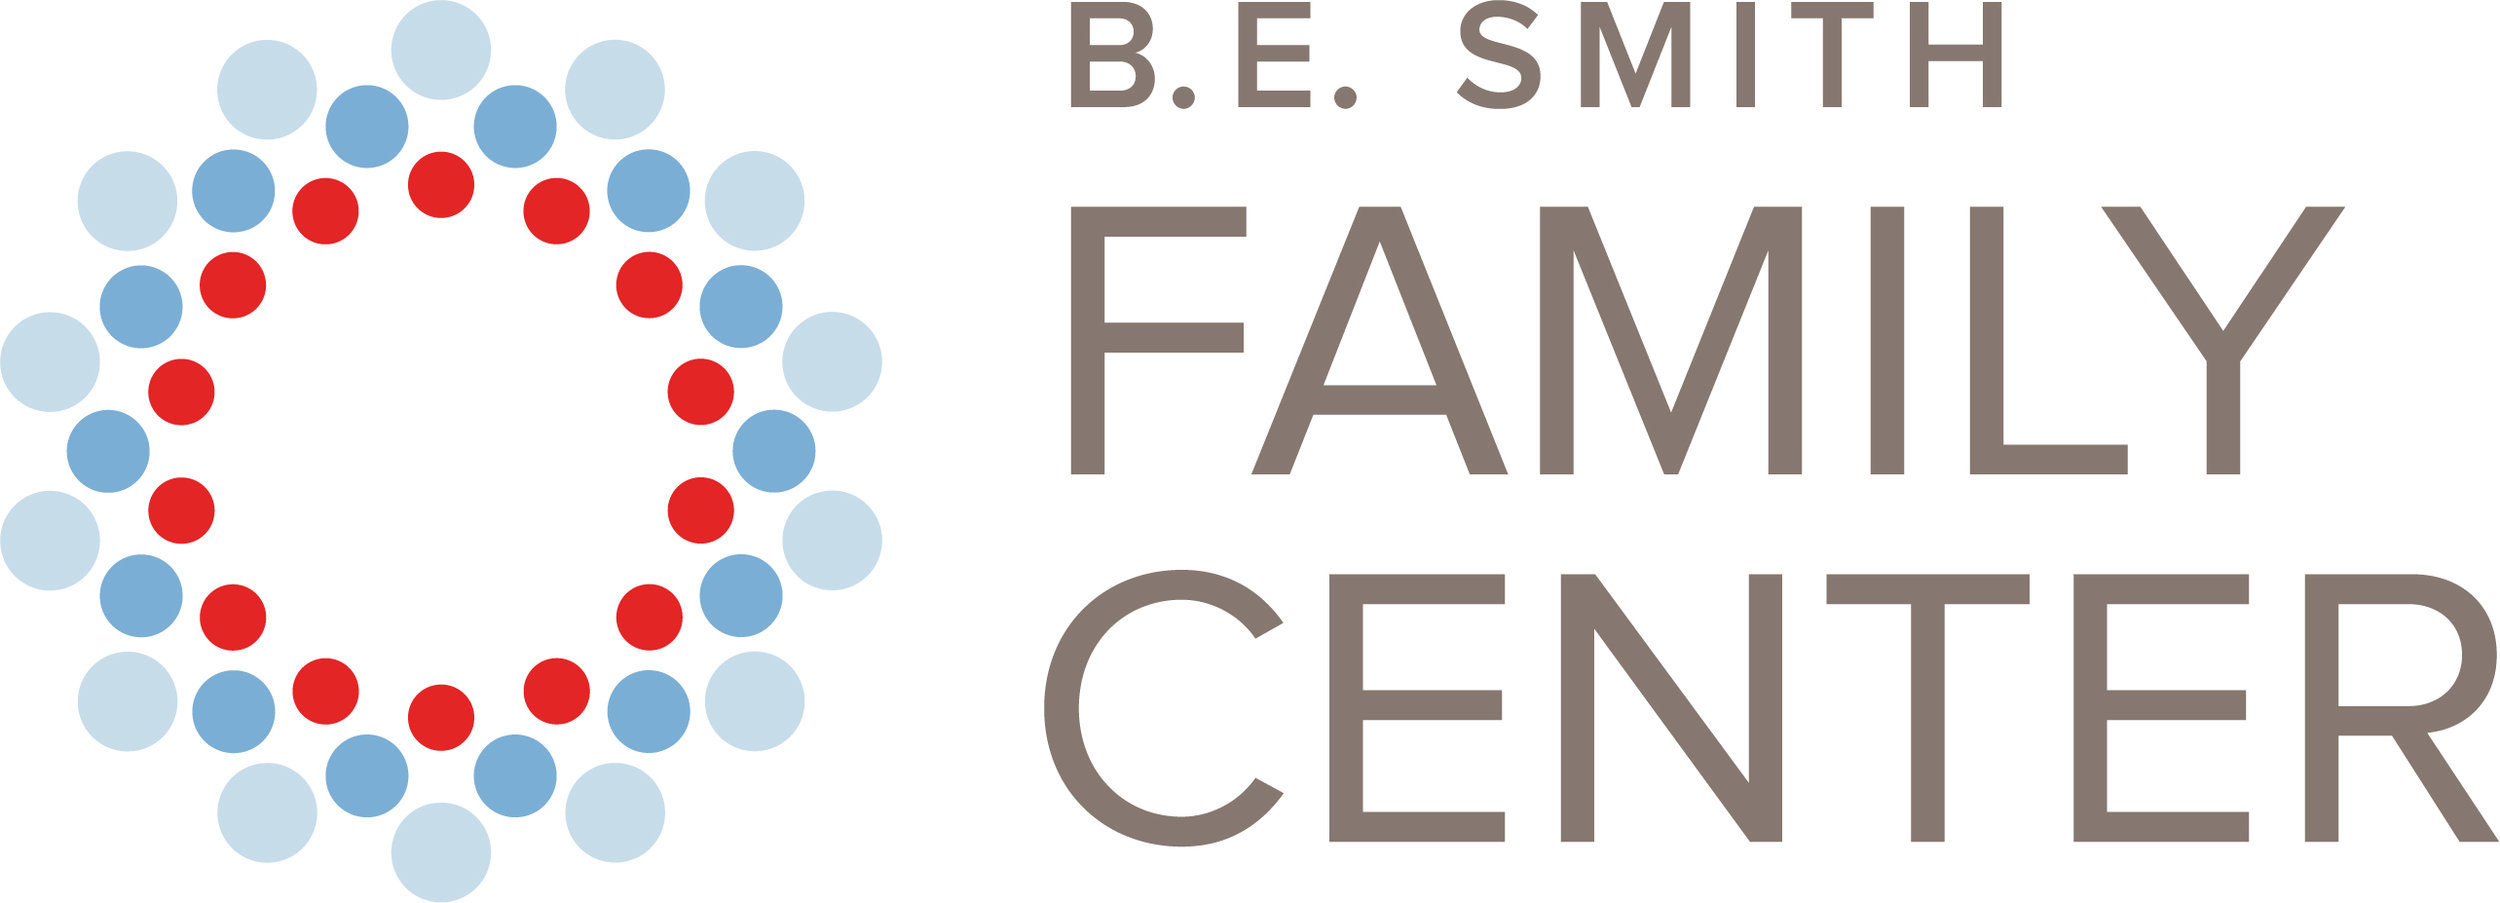 BE Smith Family Center logo final.jpg